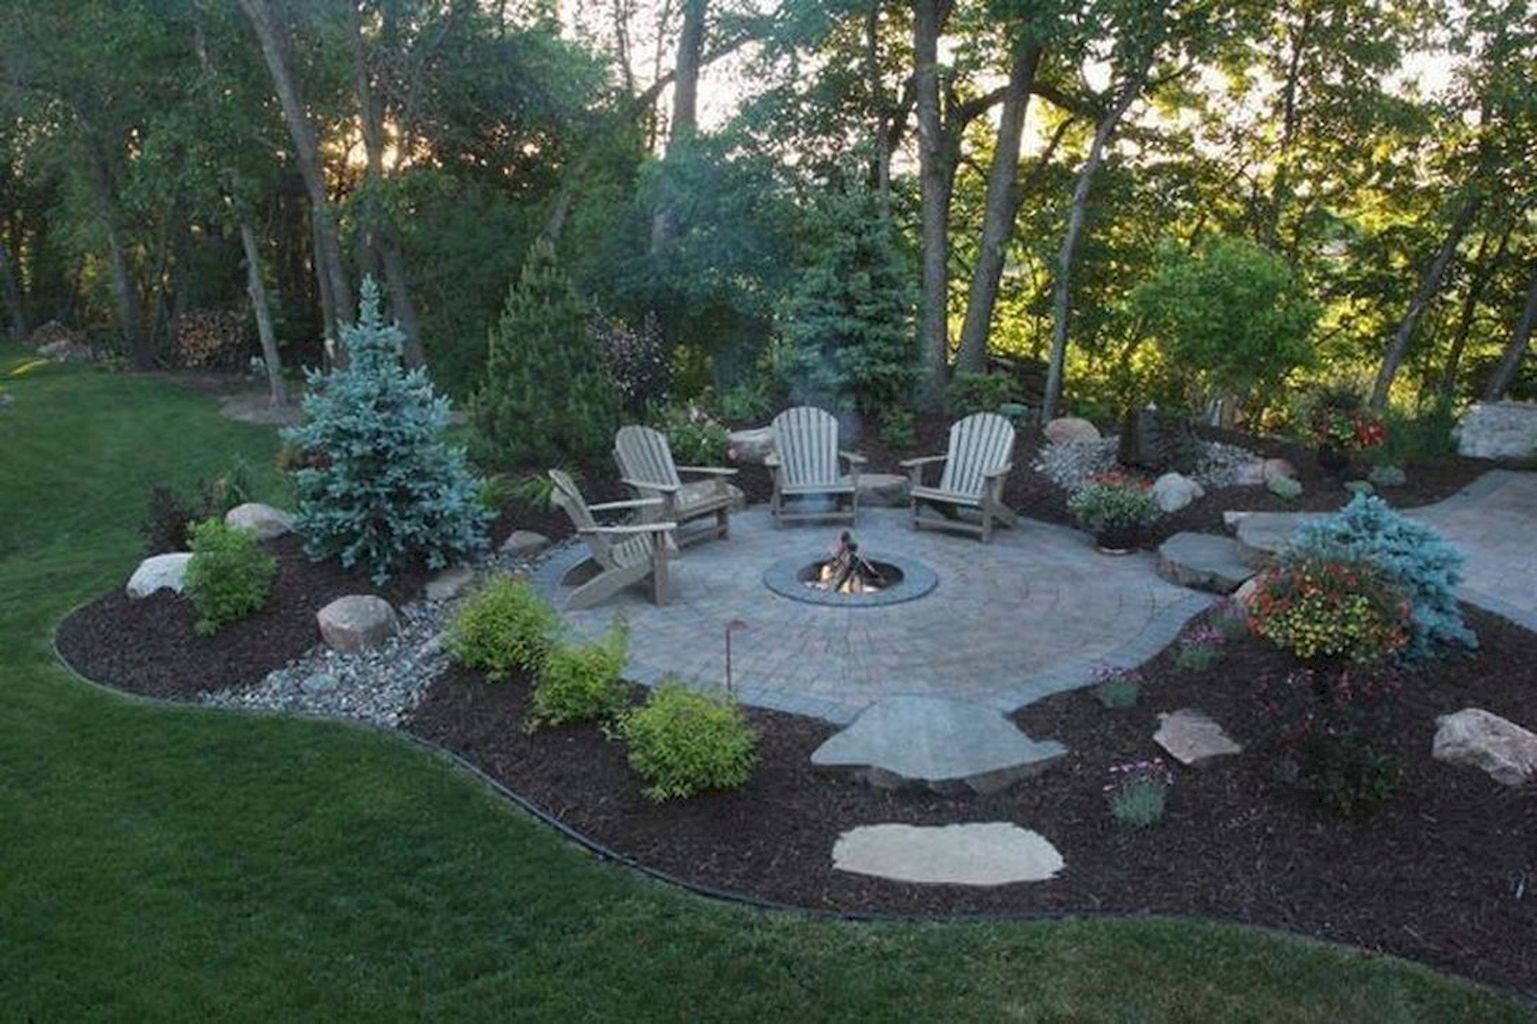 Photo of 60 Awesome Backyard Fire Pit Design Ideas – HomeIdeas.co#awesome #backyard #desi…